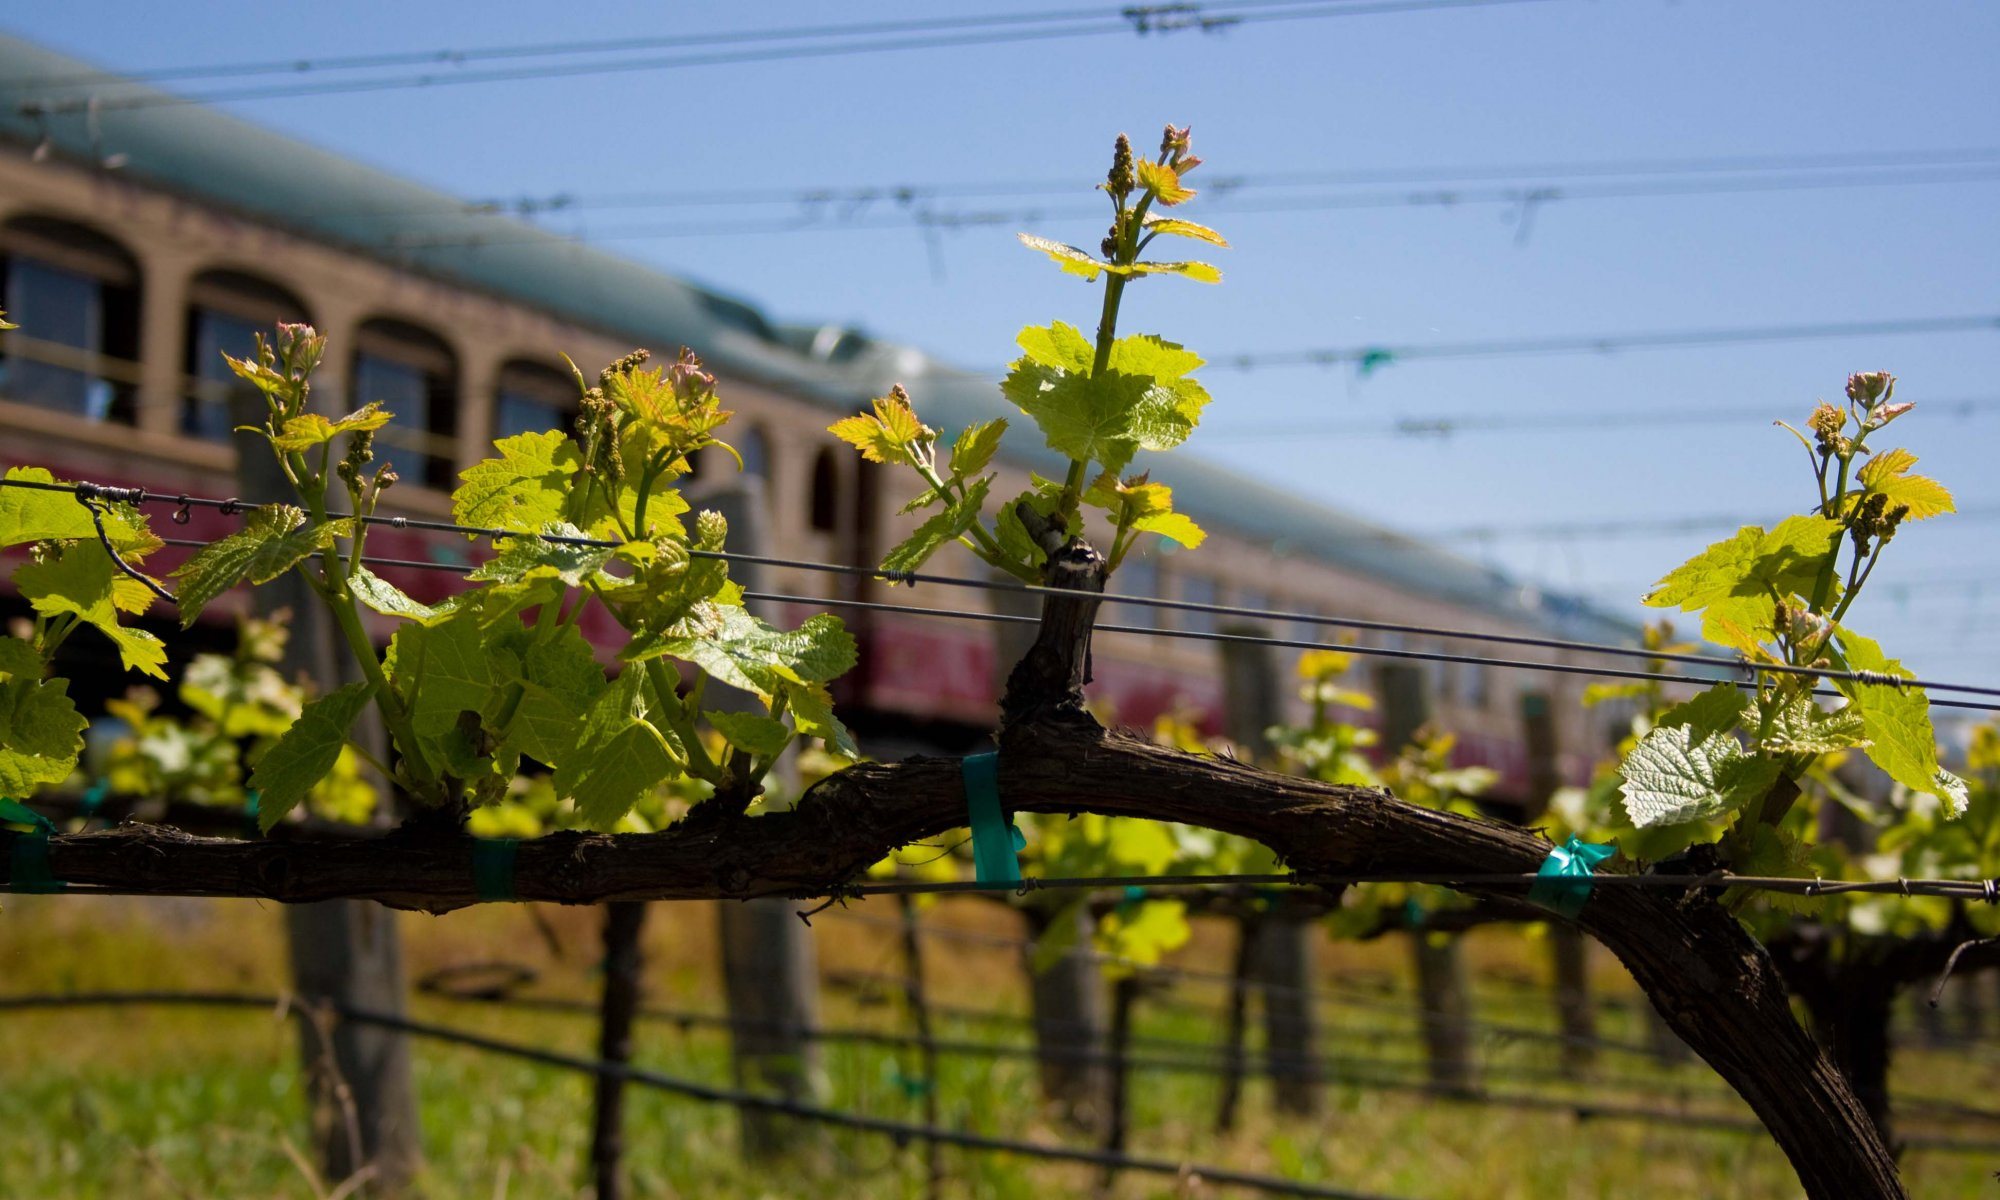 Grape buds on the vine with the Napa Valley Wine Train in the background.